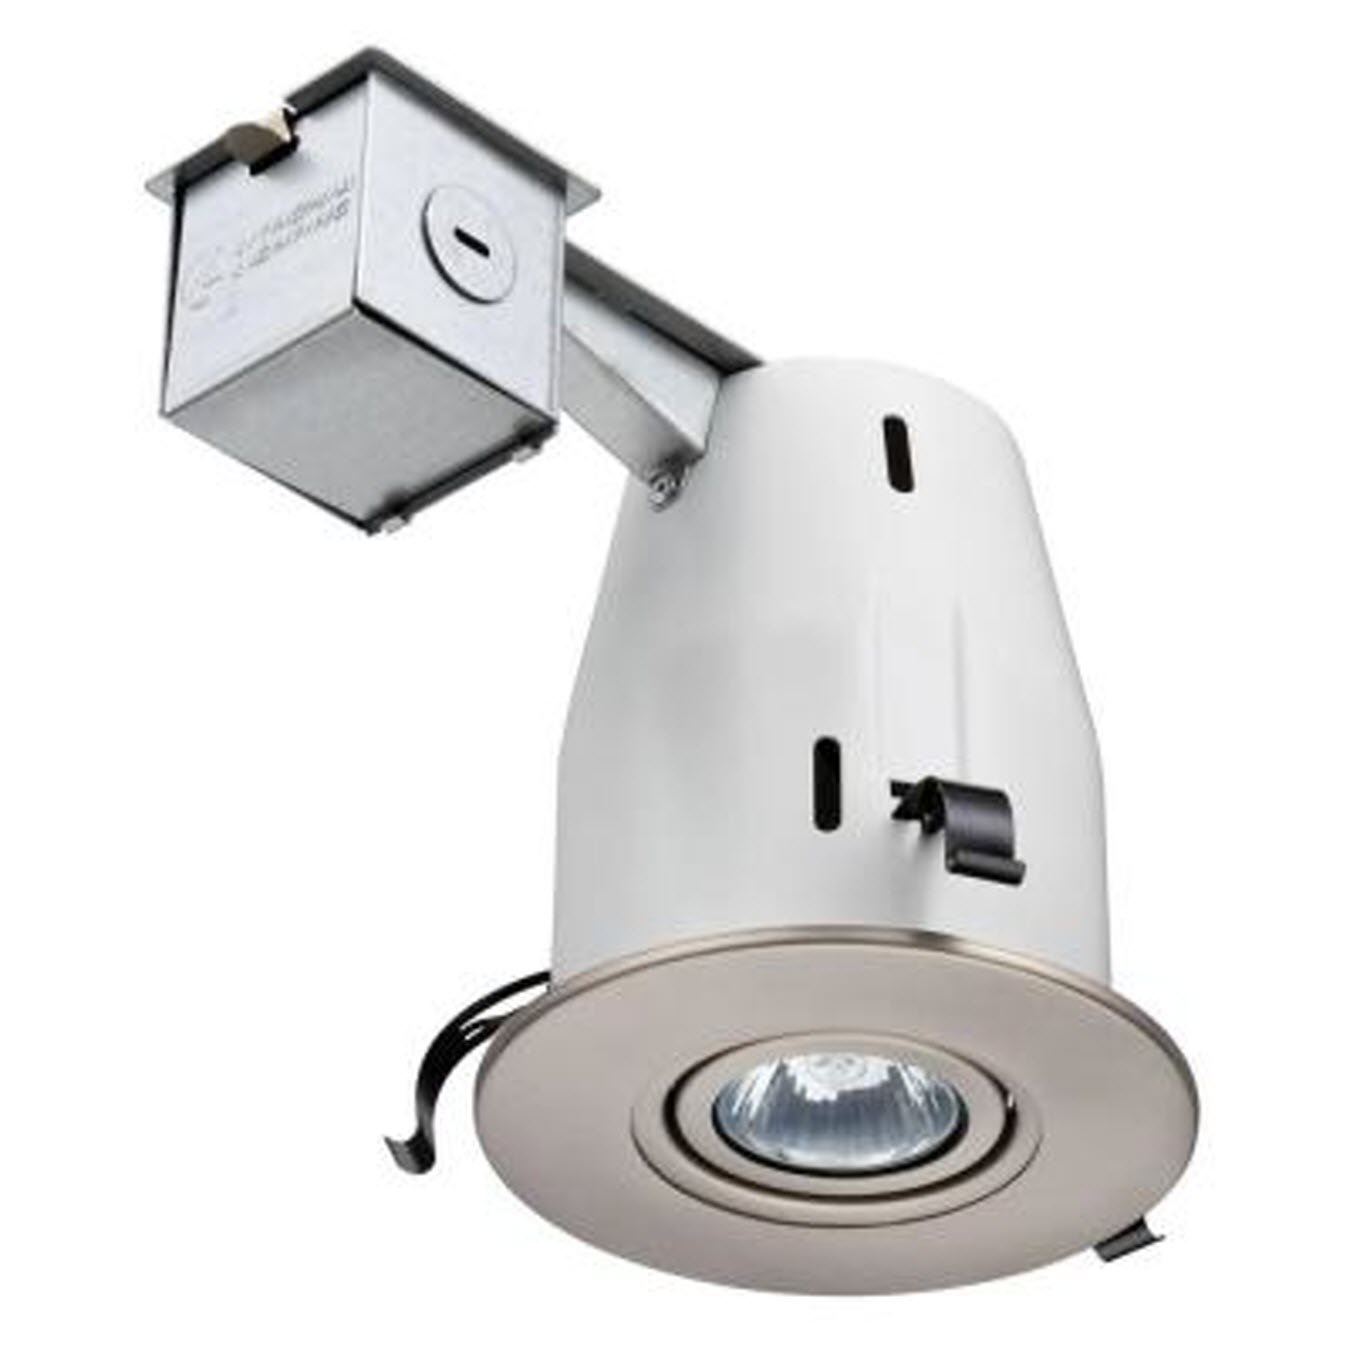 Lithonia Lighting LK4GBN LED LPI M6 4 Inch Gimbal Kit with LED Lamp Included in Nickel